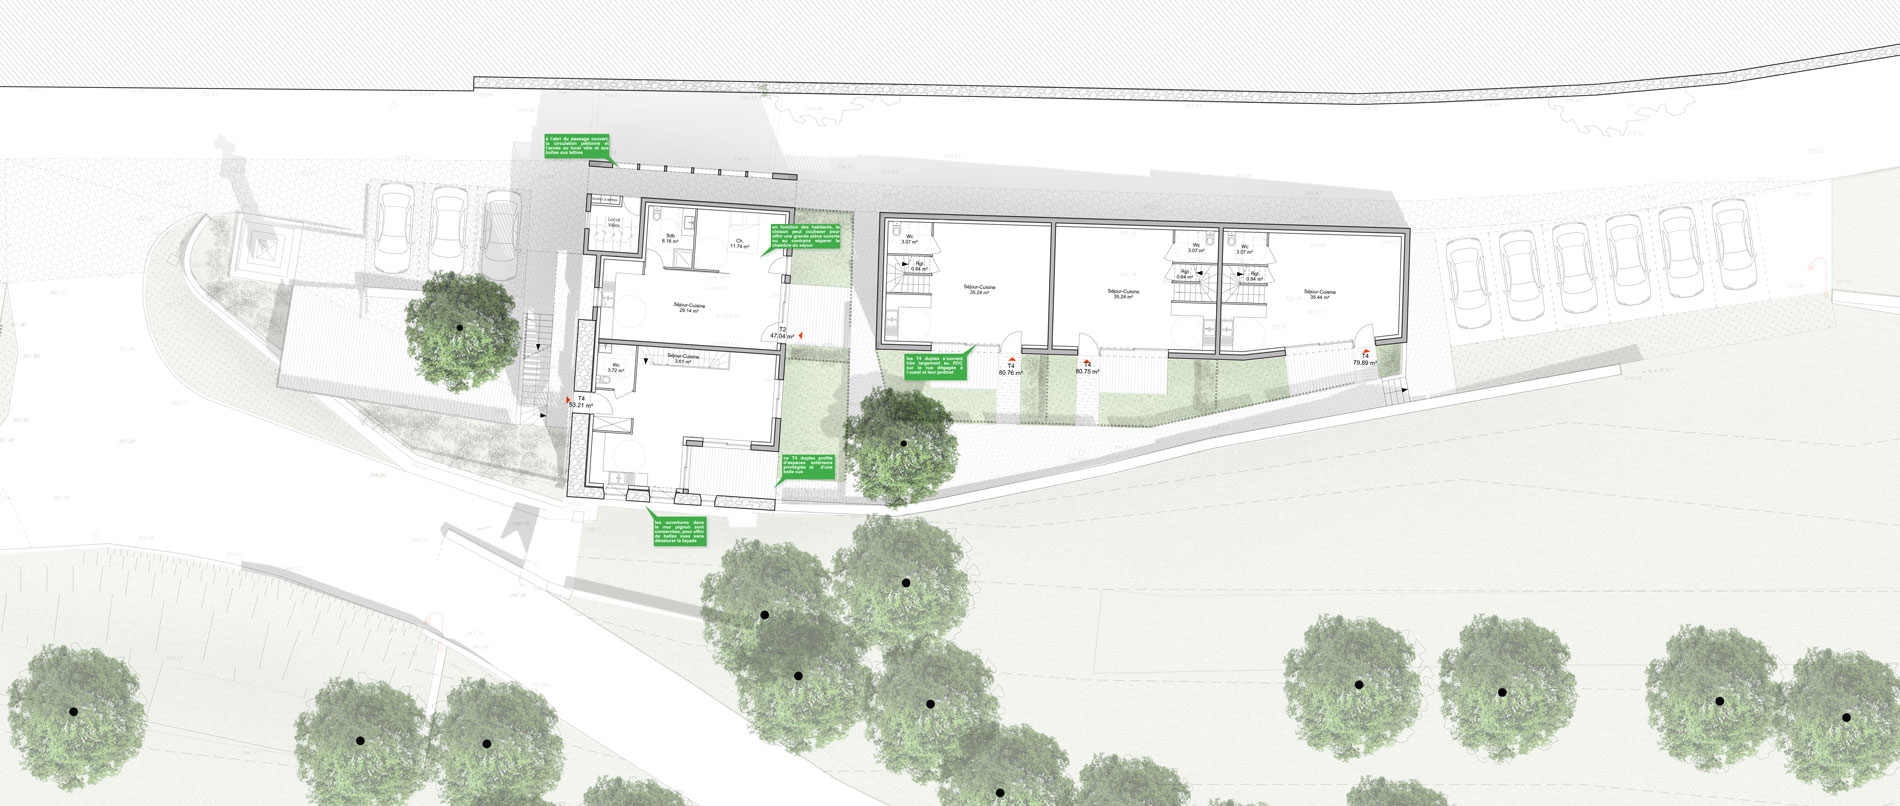 ASB-logement-rehabilitation-saint-jeoire-architecture-plan-masse-rdc-3